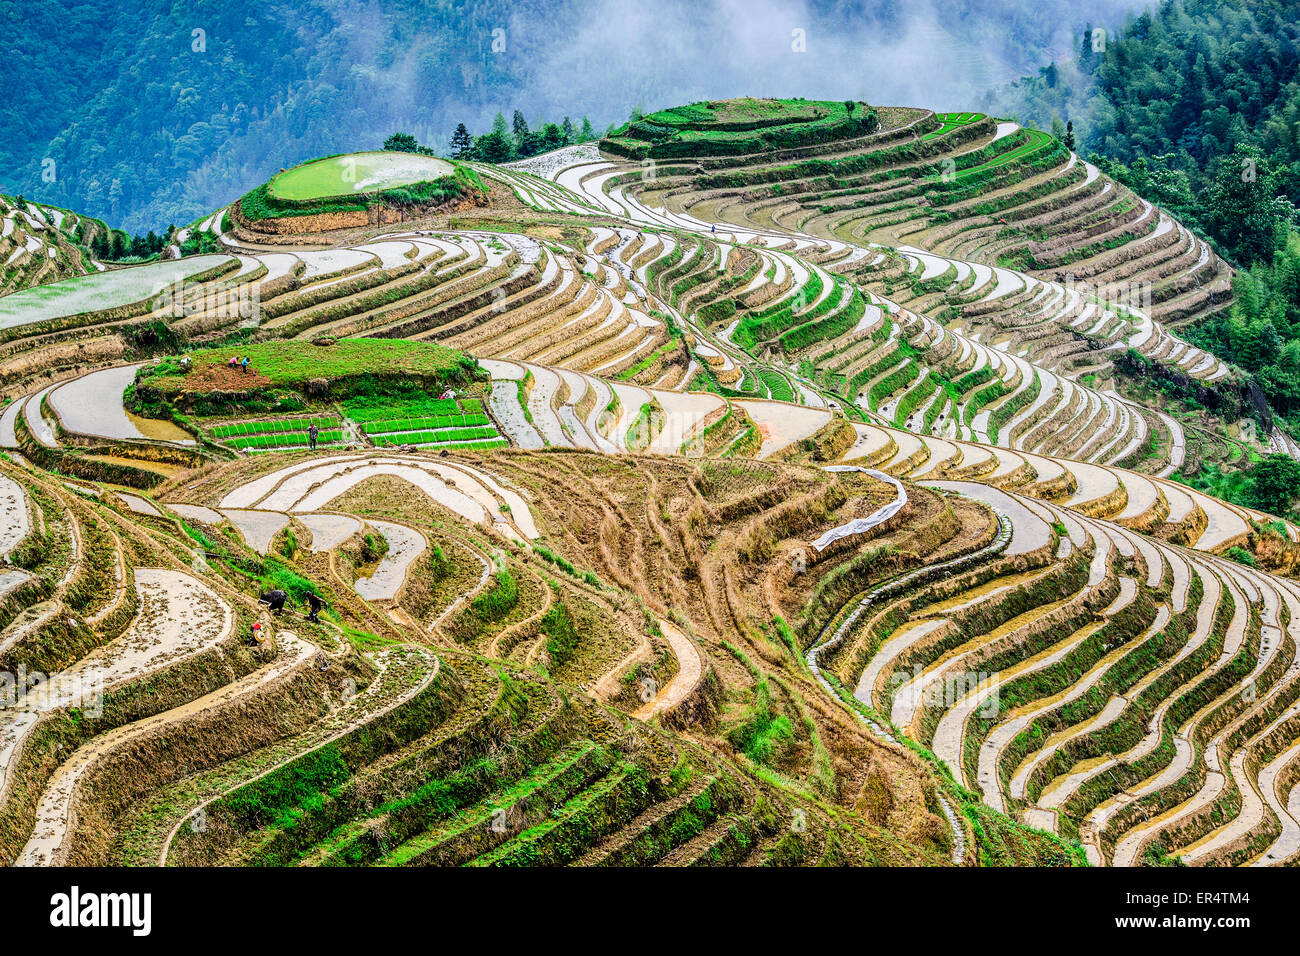 Yaoshan Mountain, Guilin, China hillside rice terraces landscape. - Stock Image